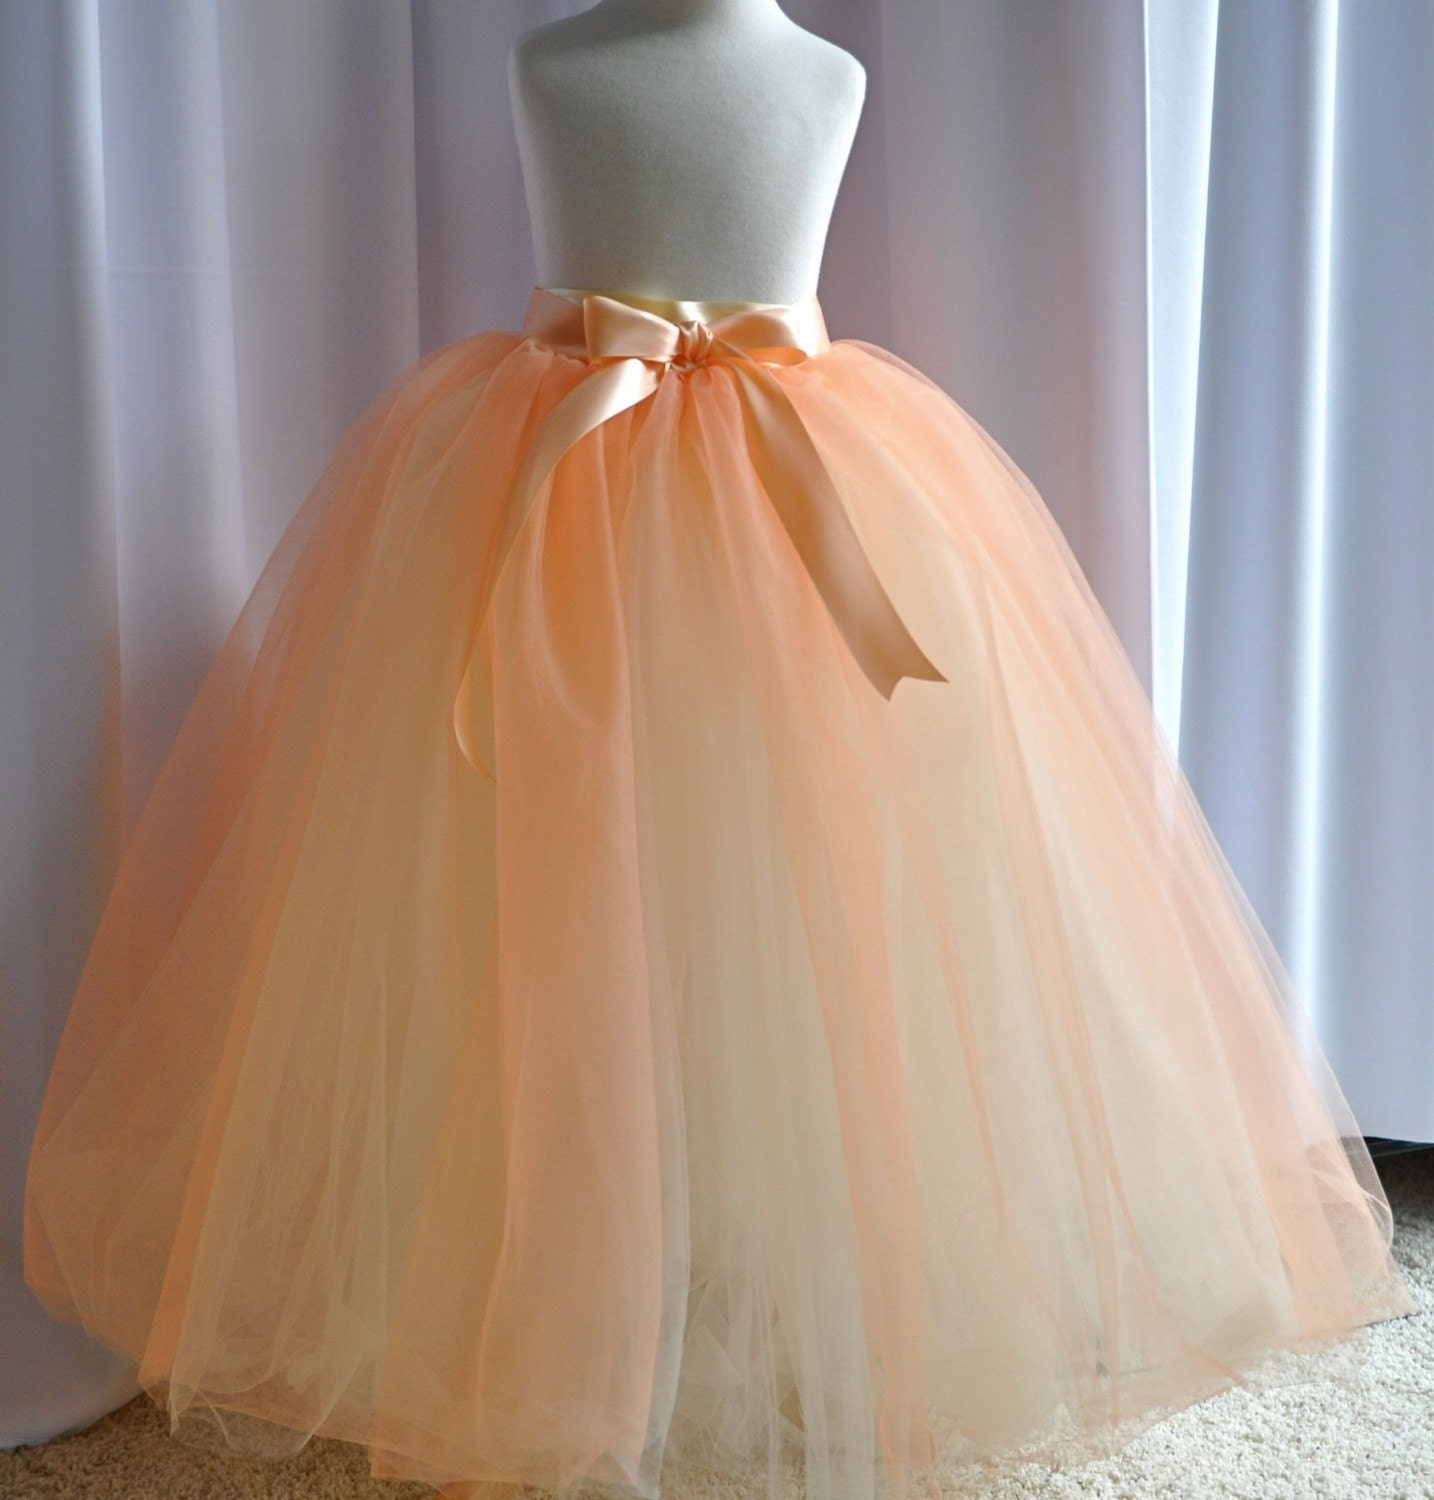 Peaches and Cream Flower Girl Tutu for Weddings. Available in several color combinations. This is a two in one tutu and reverses. 26 inches long. Princess length on little girls. Entirely sewn tutu.